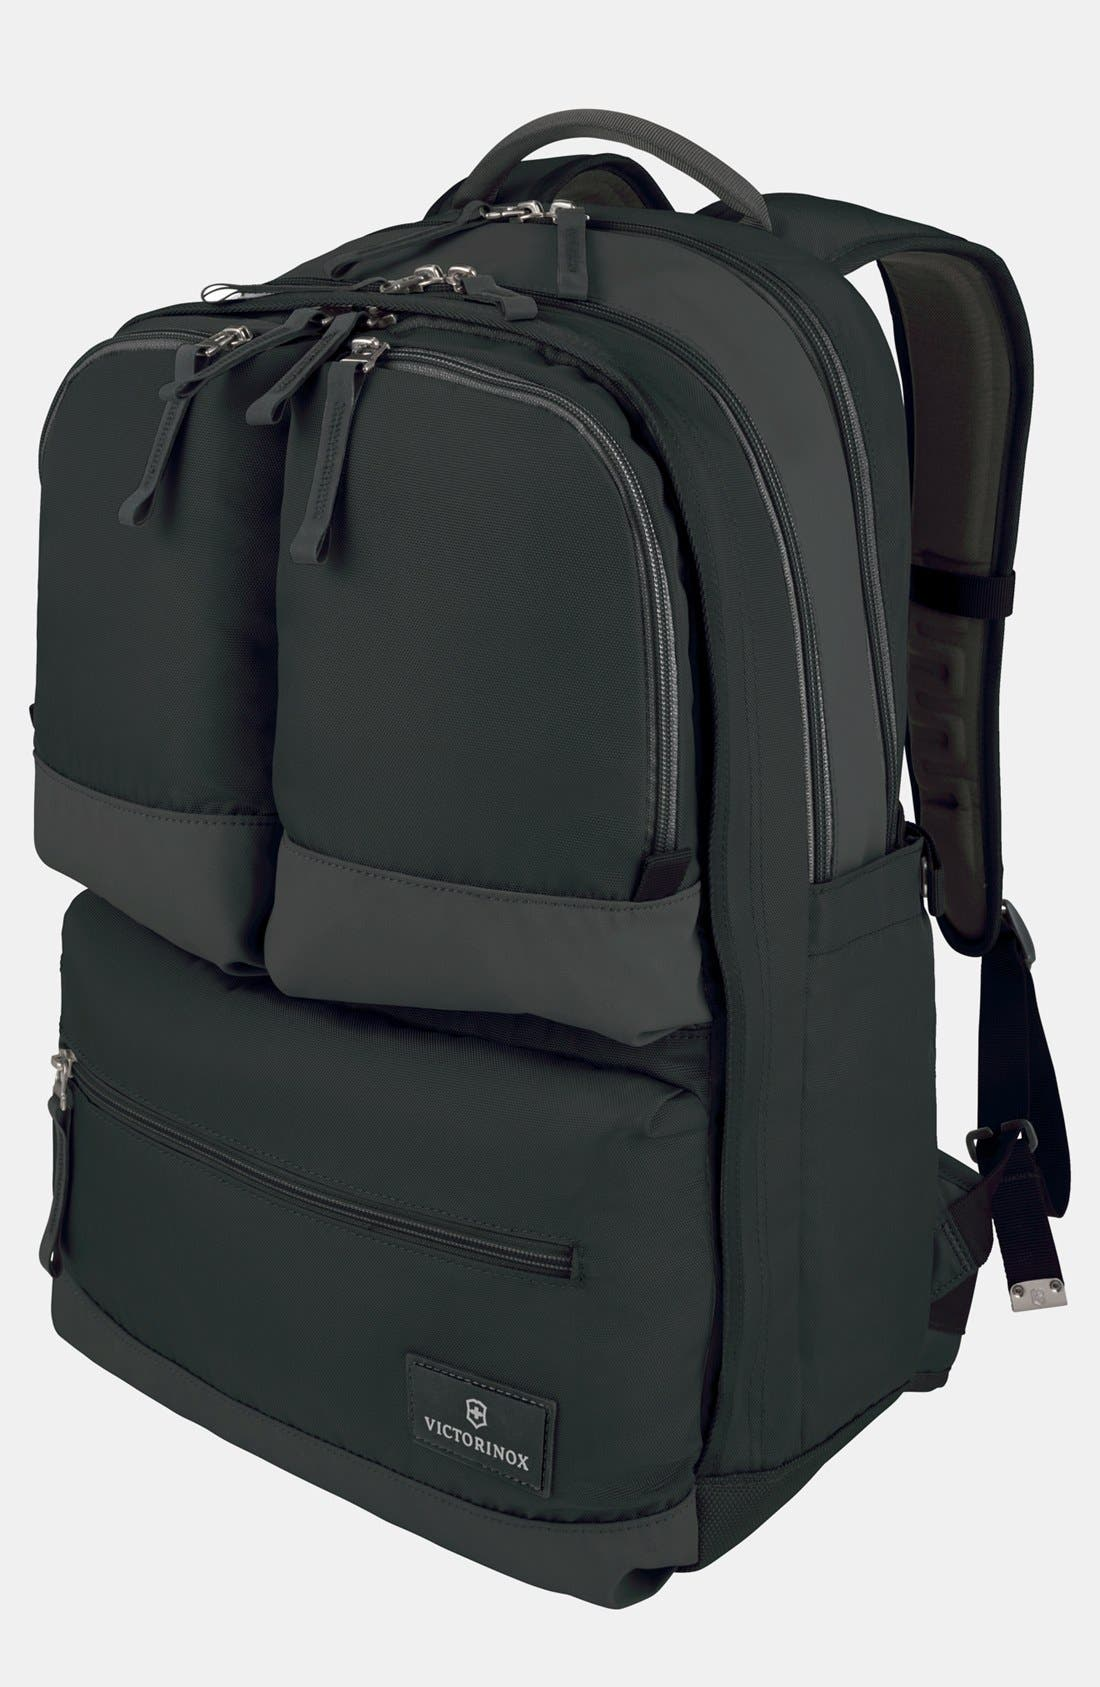 Main Image - Victorinox Swiss Army® Dual Compartment Backpack